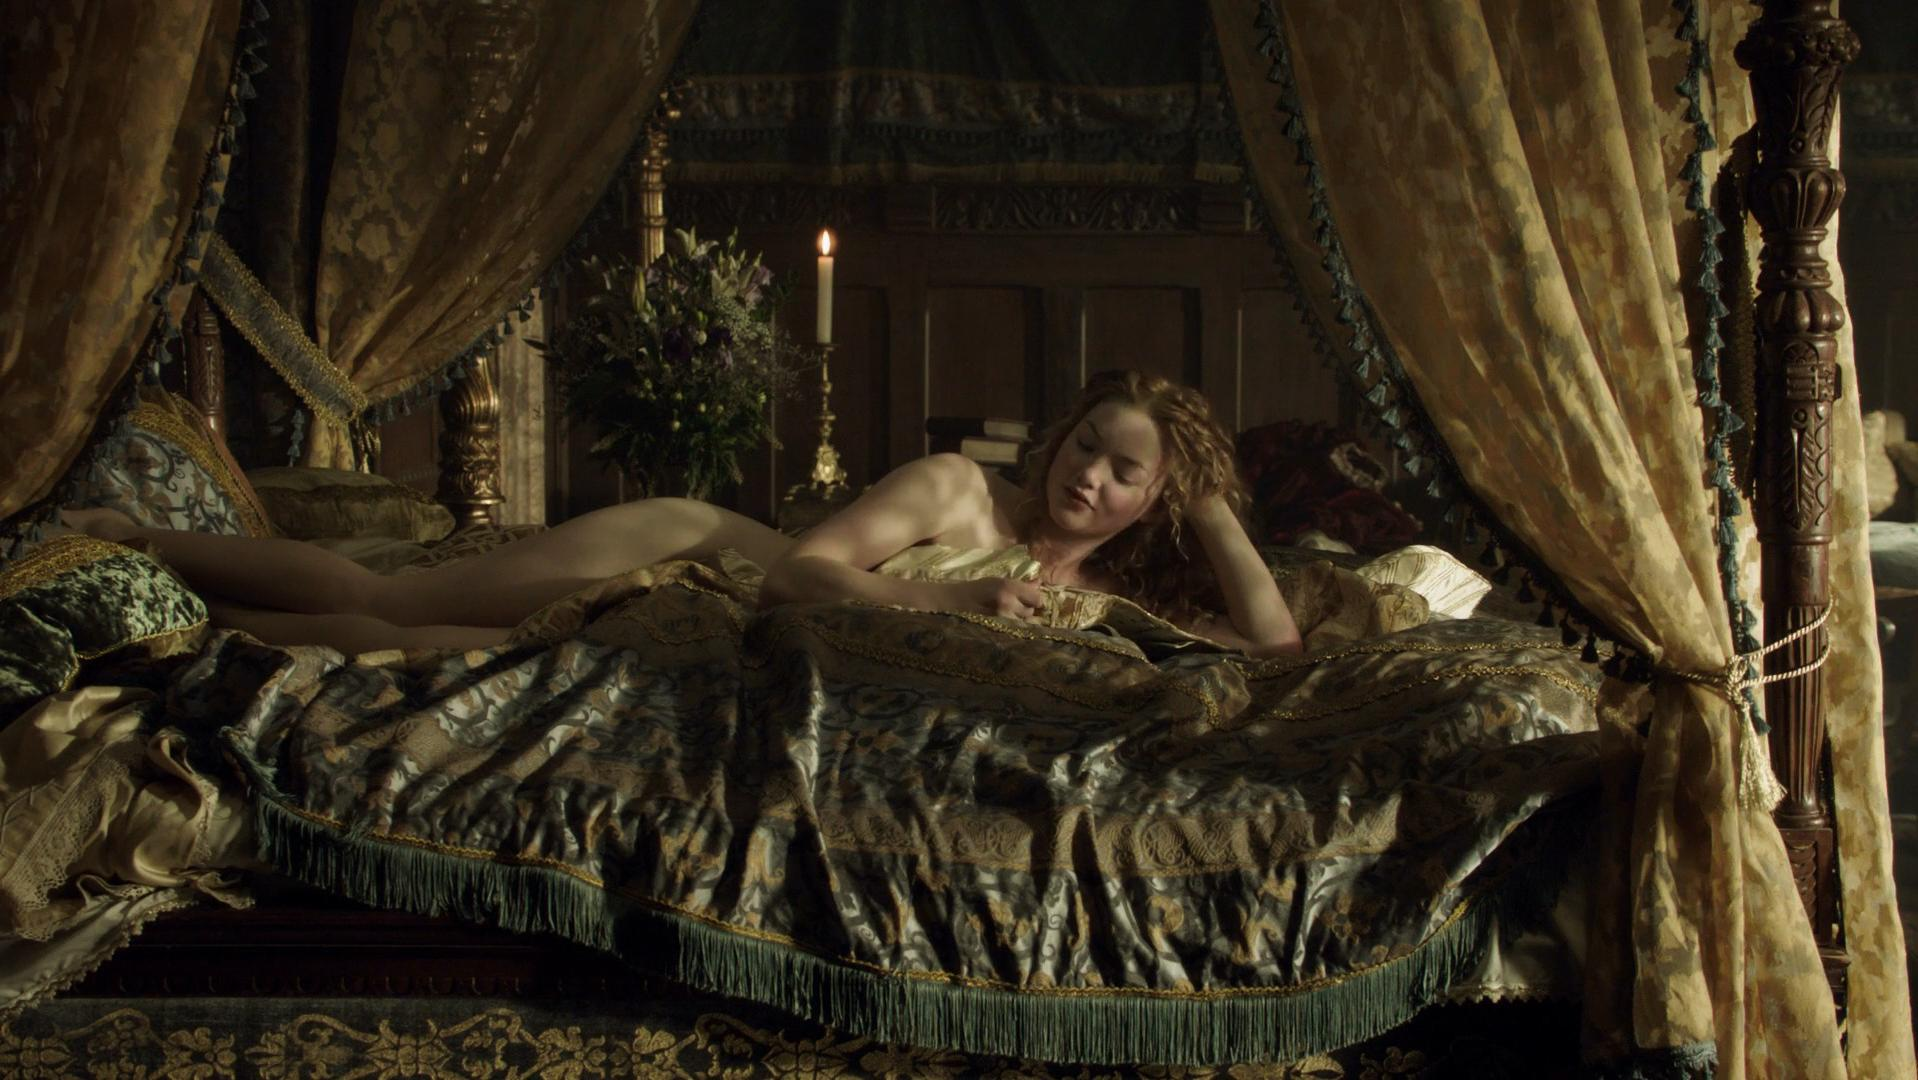 Holliday Grainger nude - The Borgias s03e02 (2013)